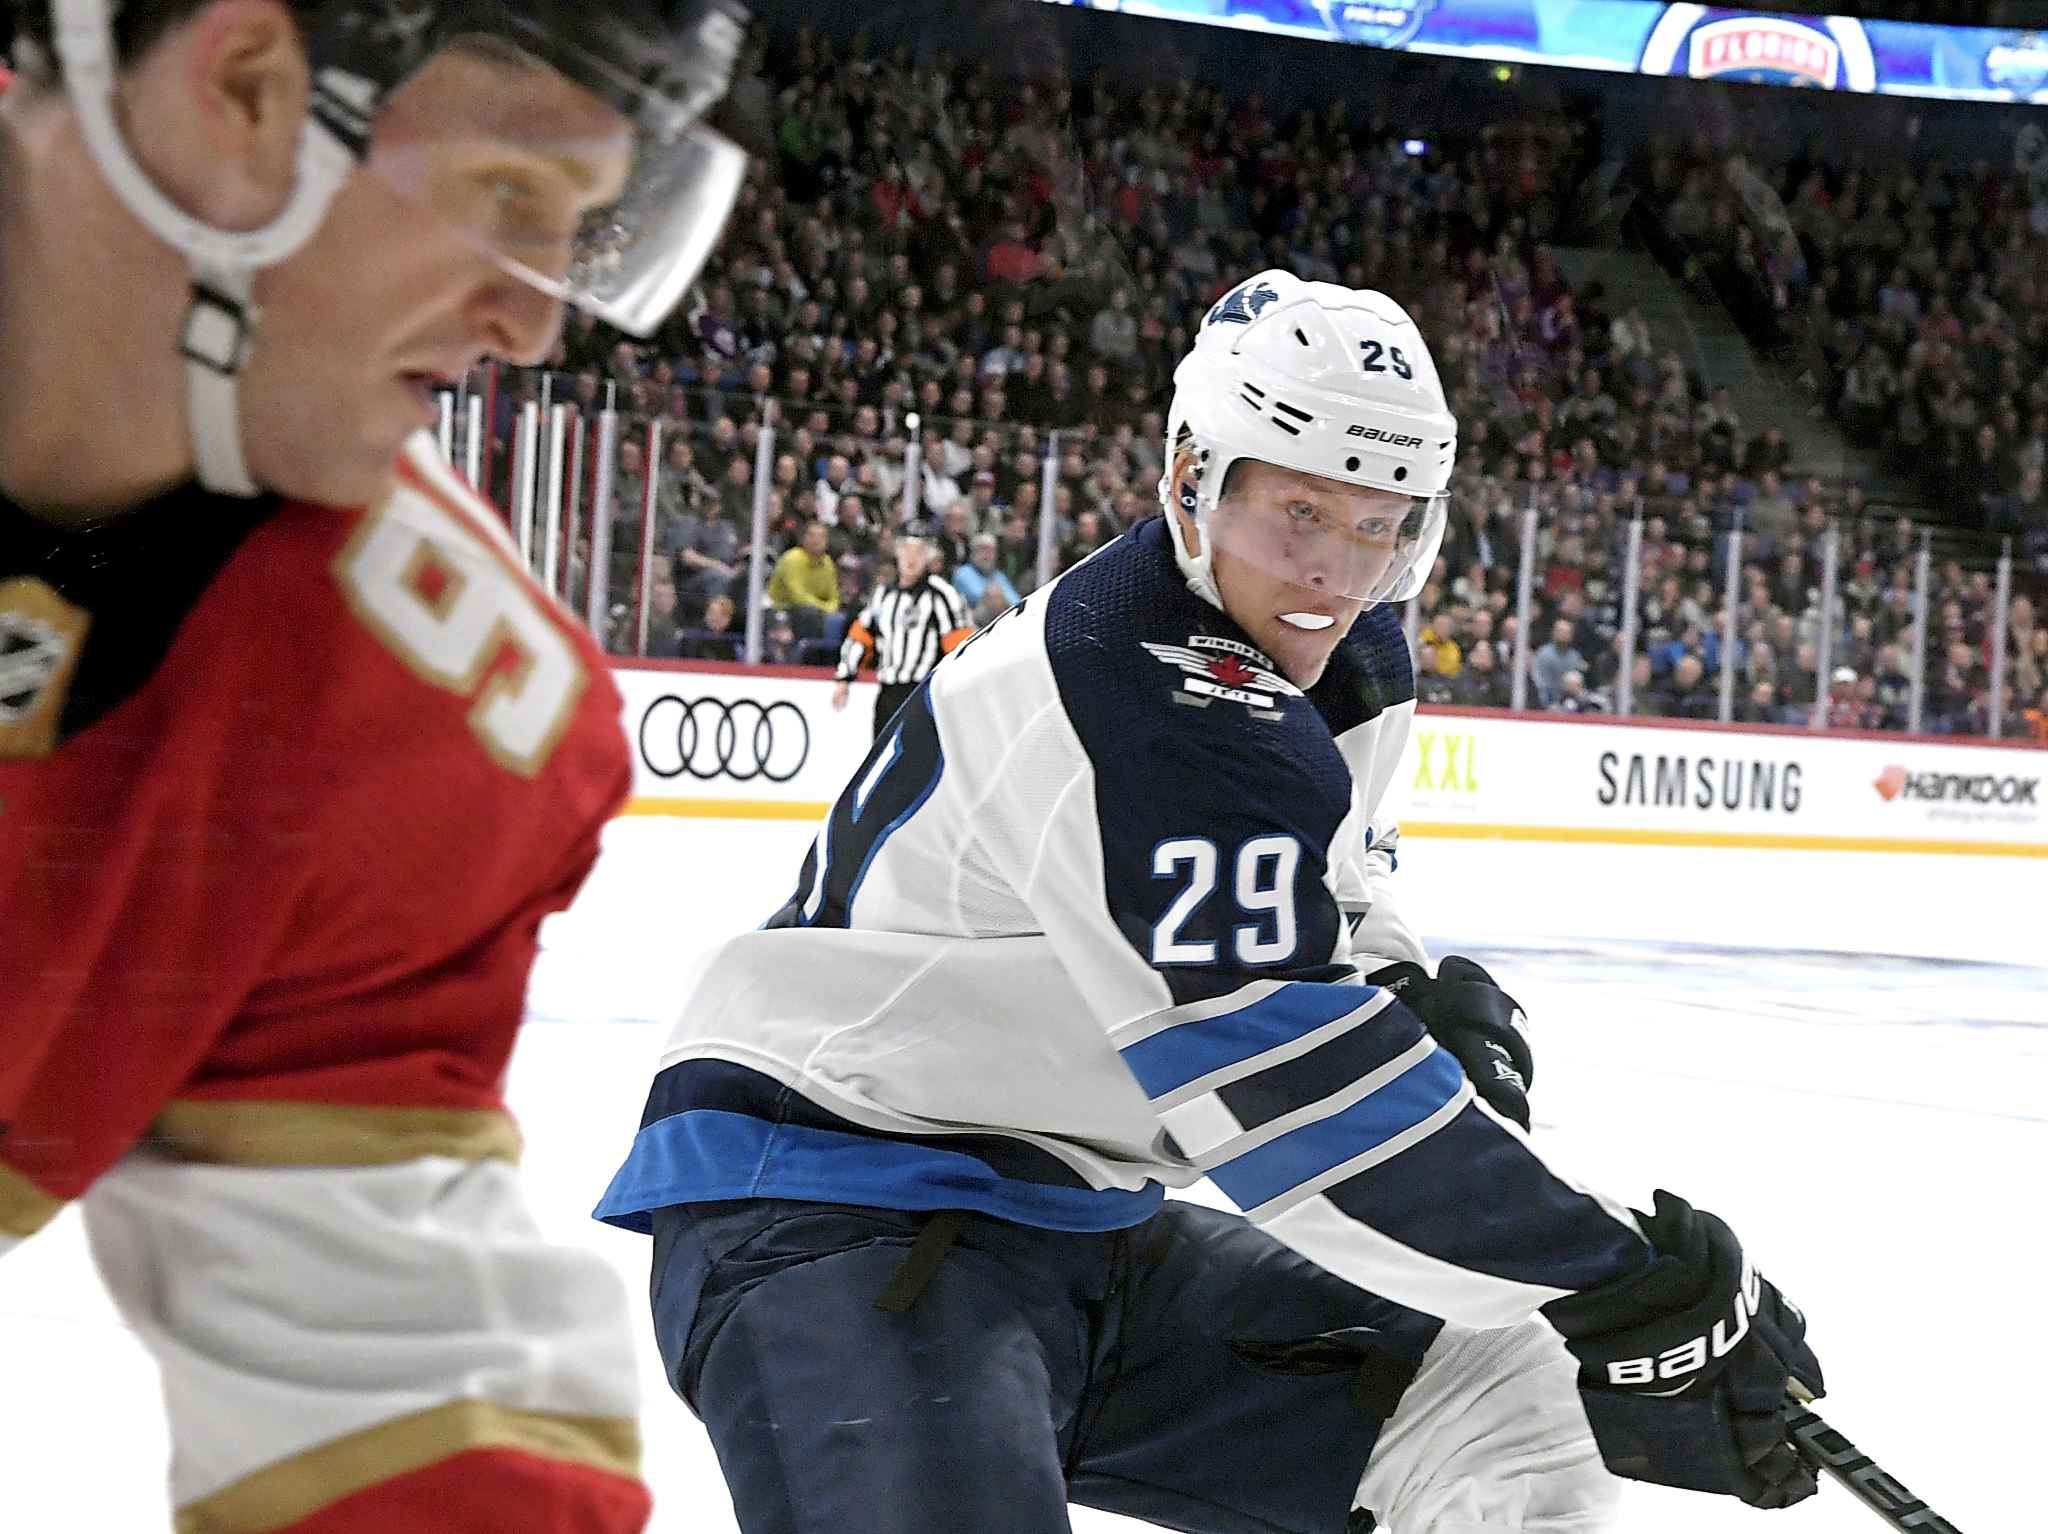 Patrik Laine of the Winnipeg Jets scored his fourth, fifth and sixth goals of the season against the Florida Panthers, Thursday.